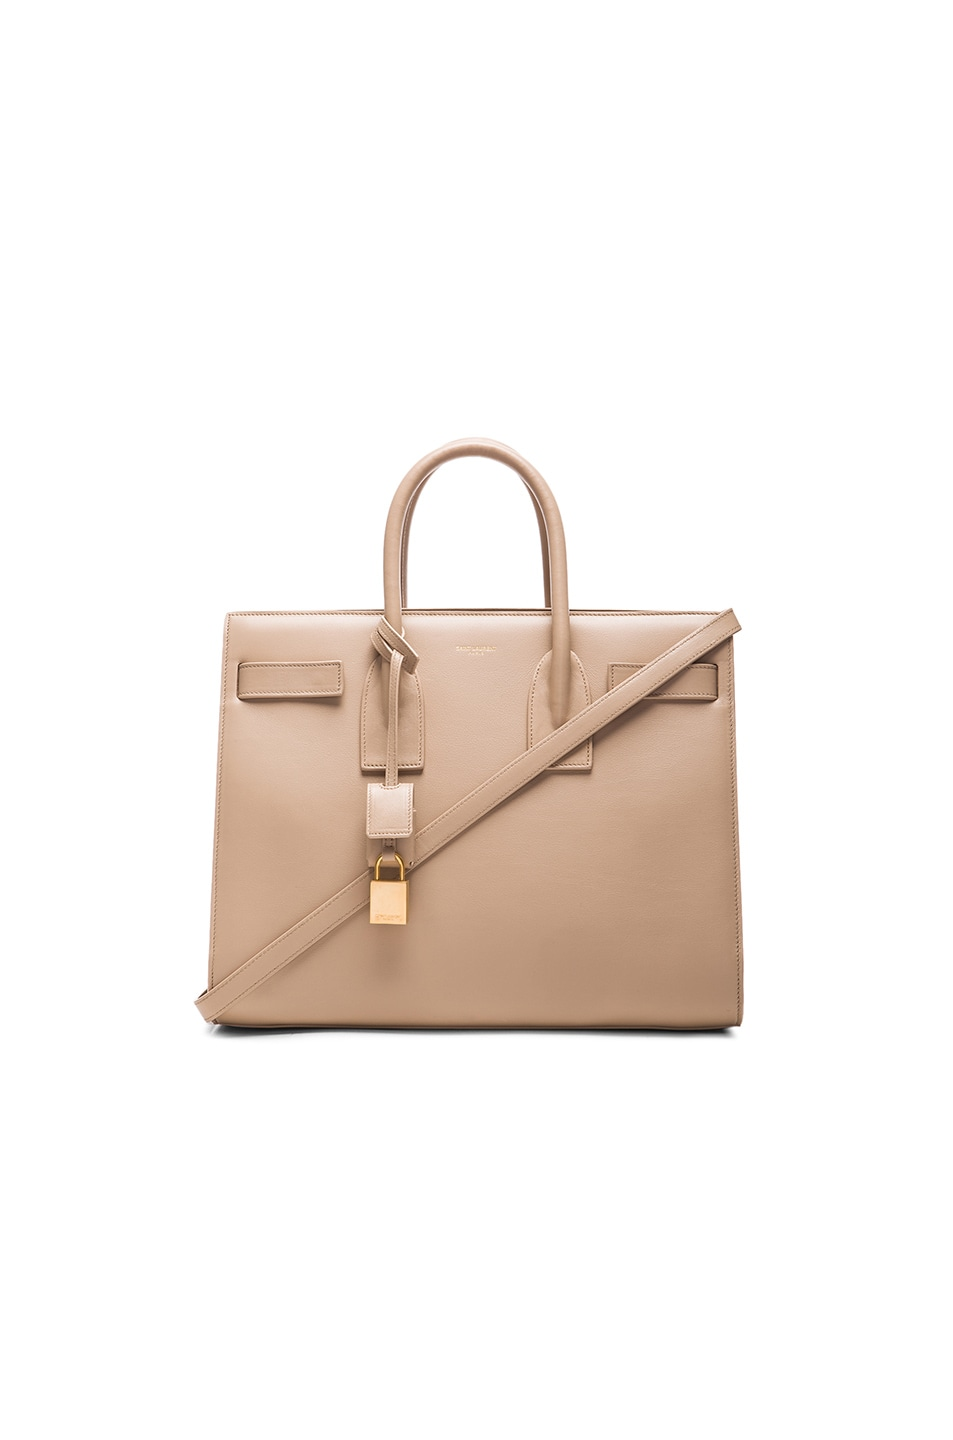 Image 1 of Saint Laurent Small Sac De Jour Carryall Bag in Dark Beige